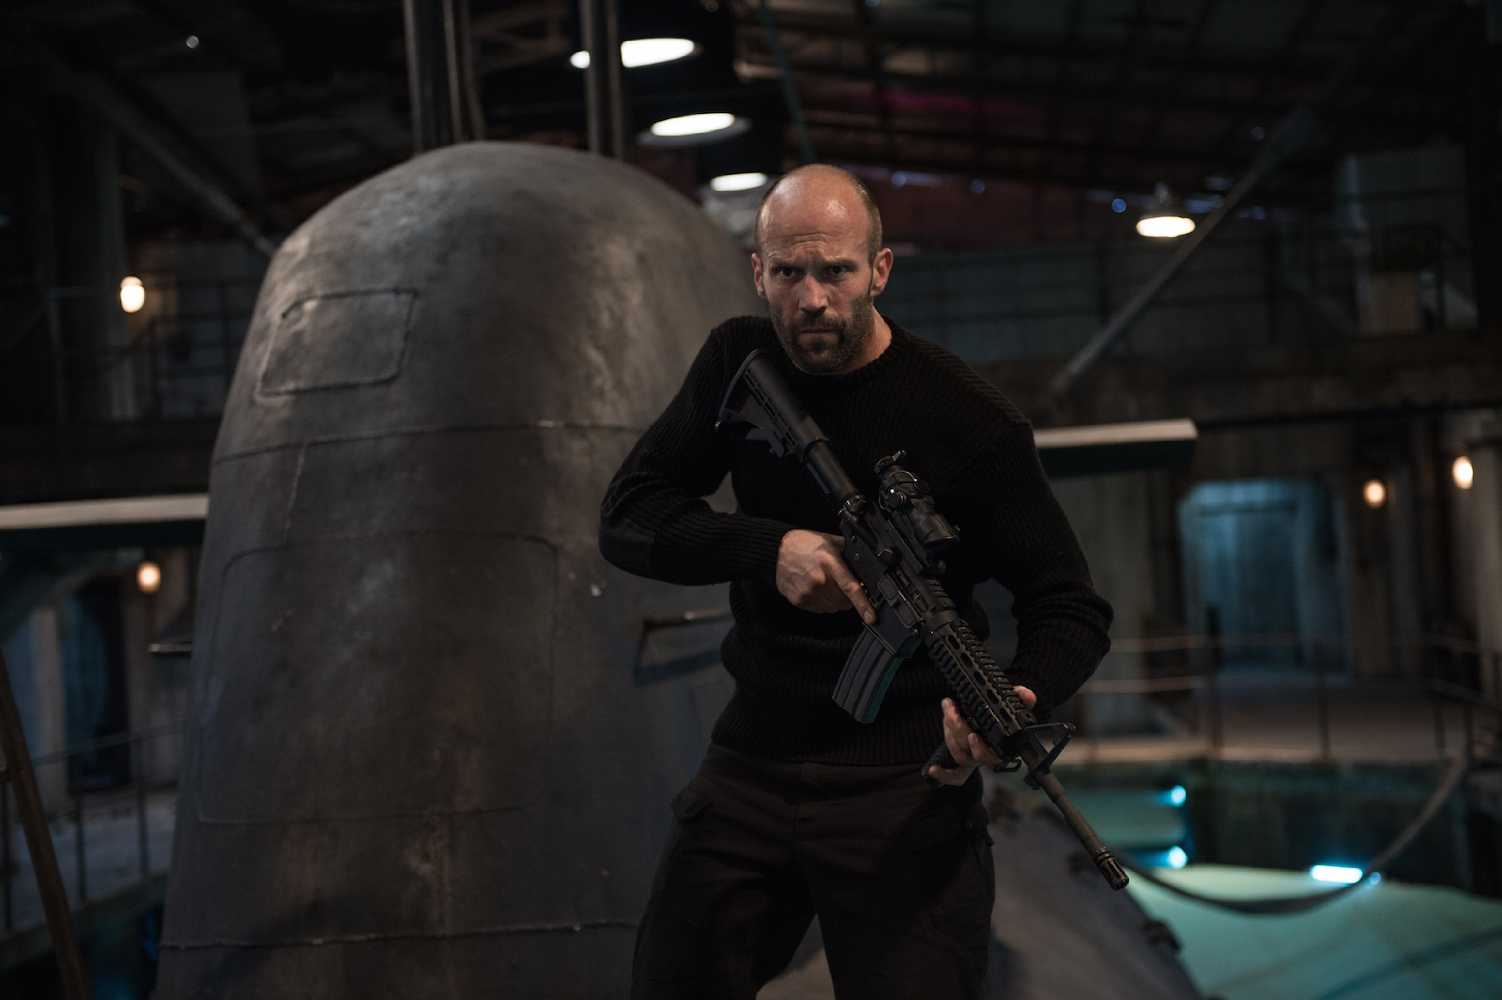 Mechanic: Resurrection (2016) image